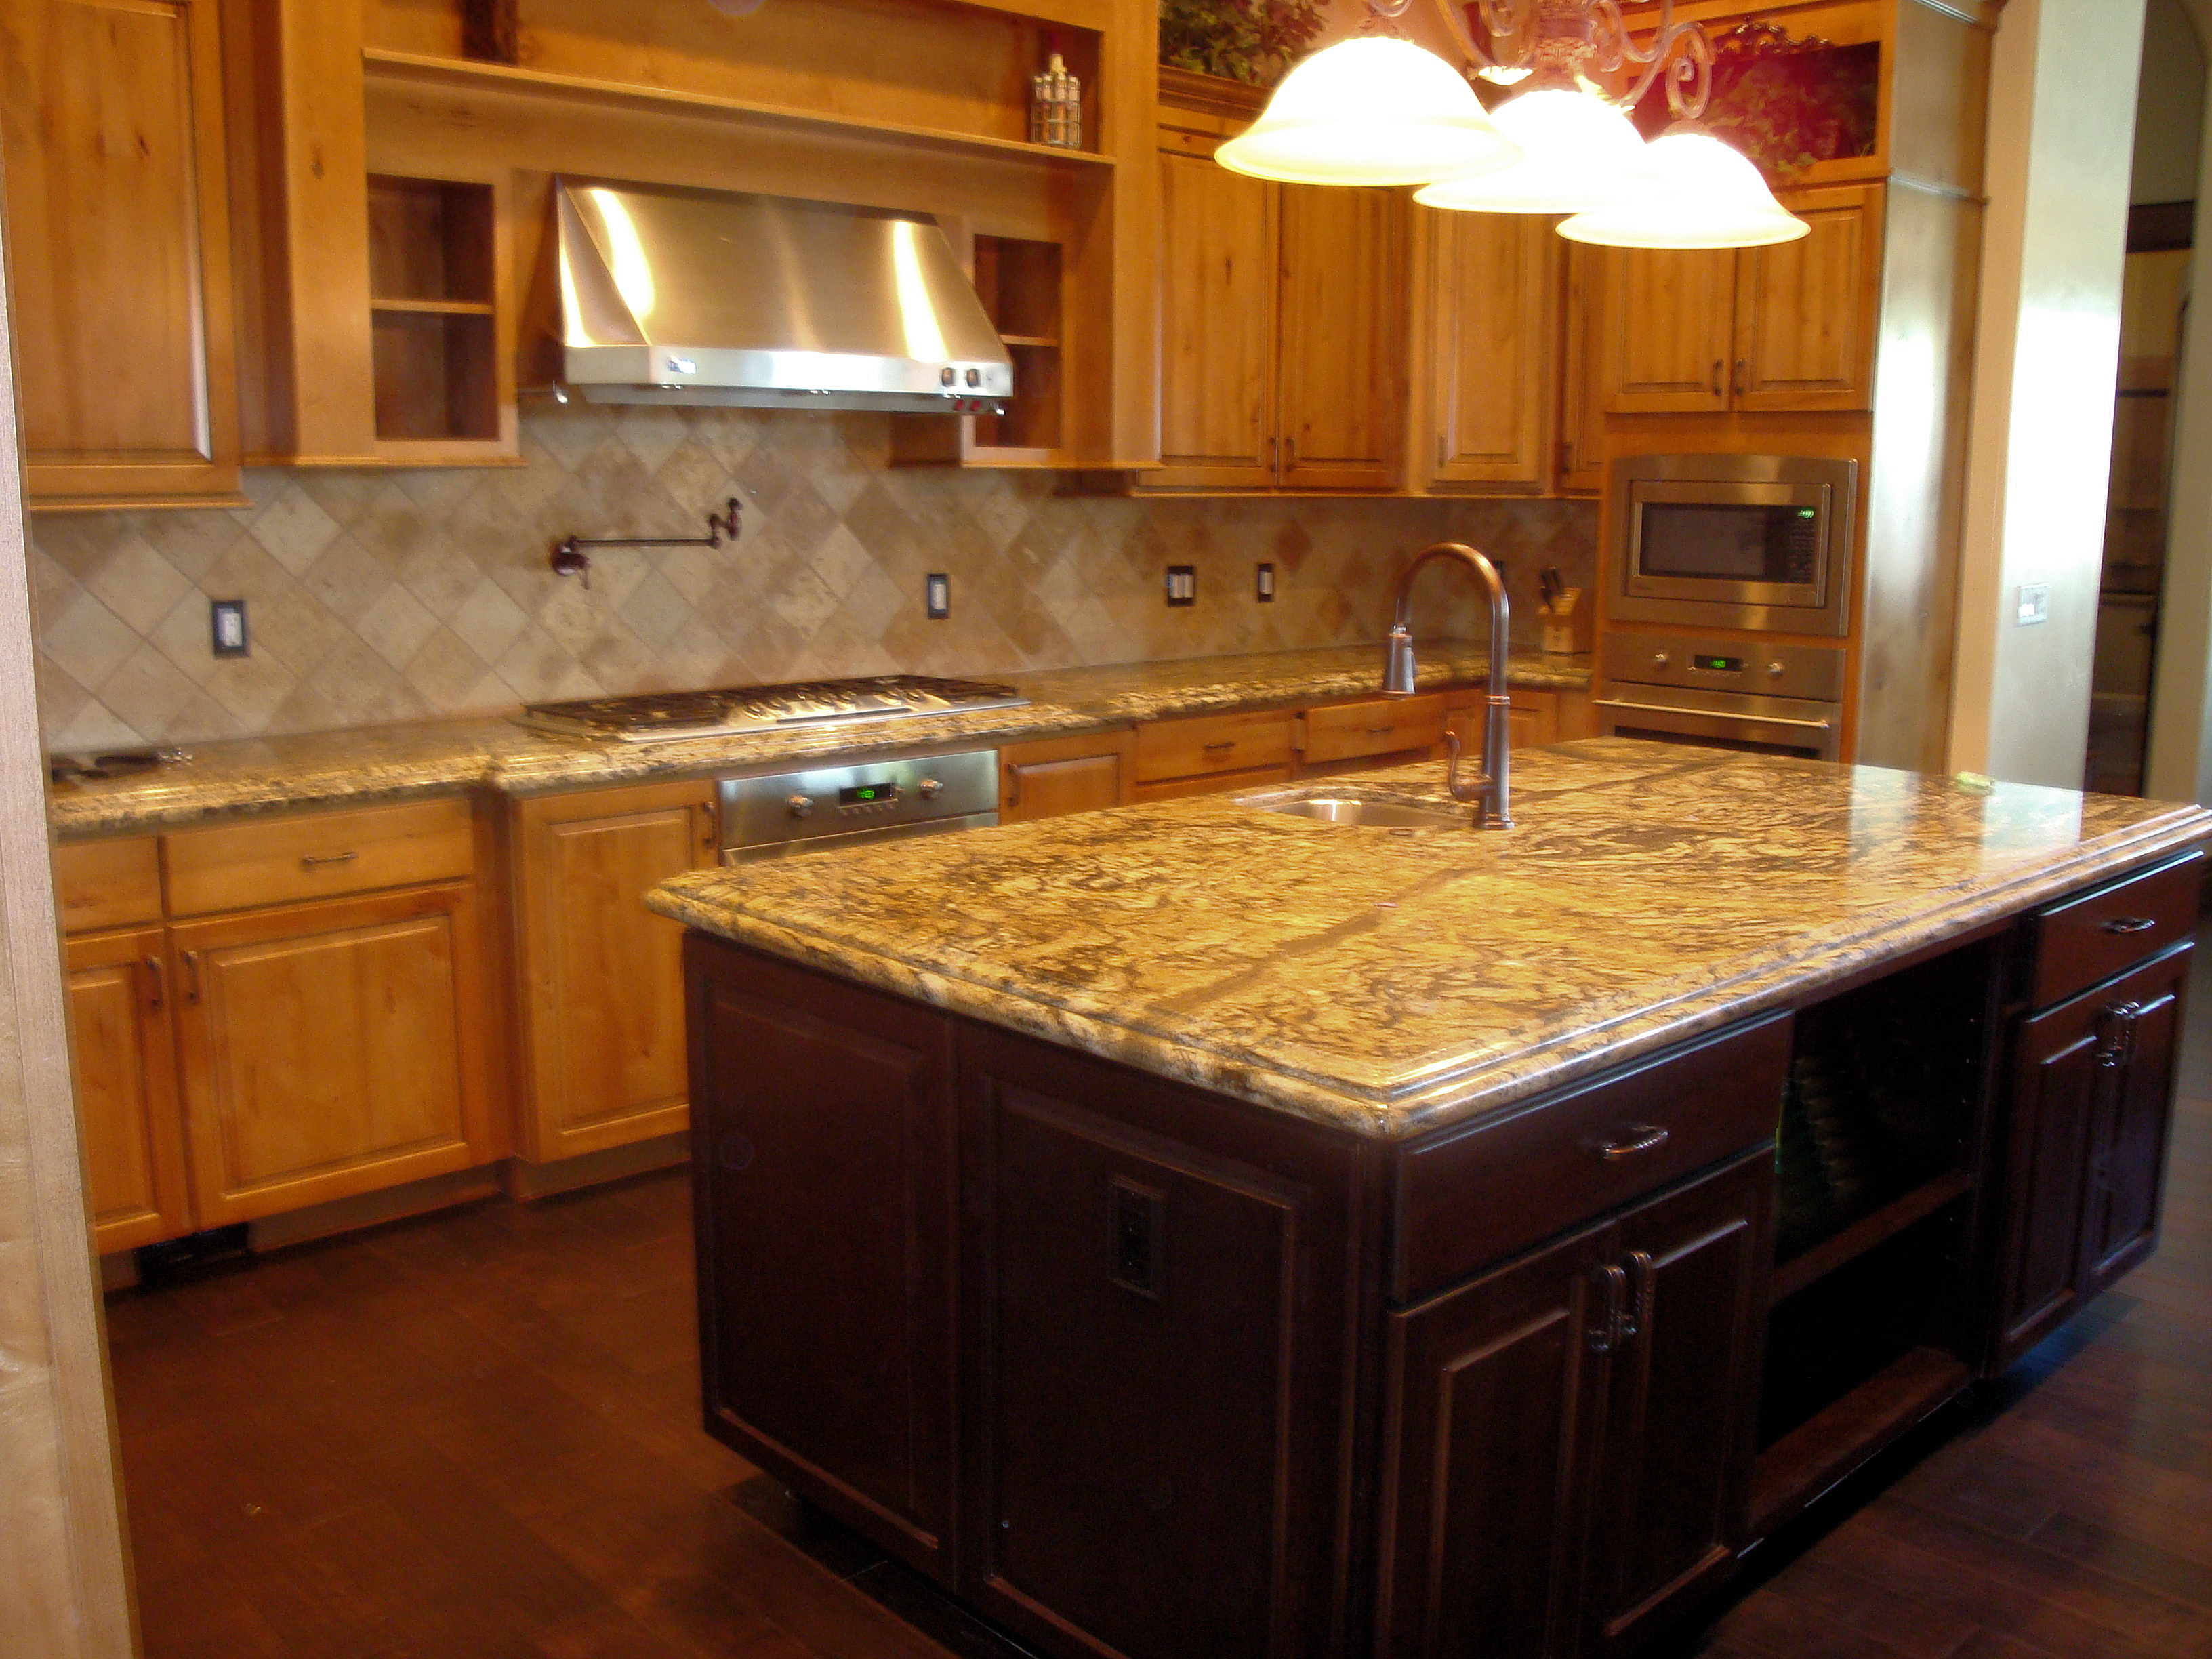 Furniture countertops edge options granite material installed kitchen countertop materials casual cottage